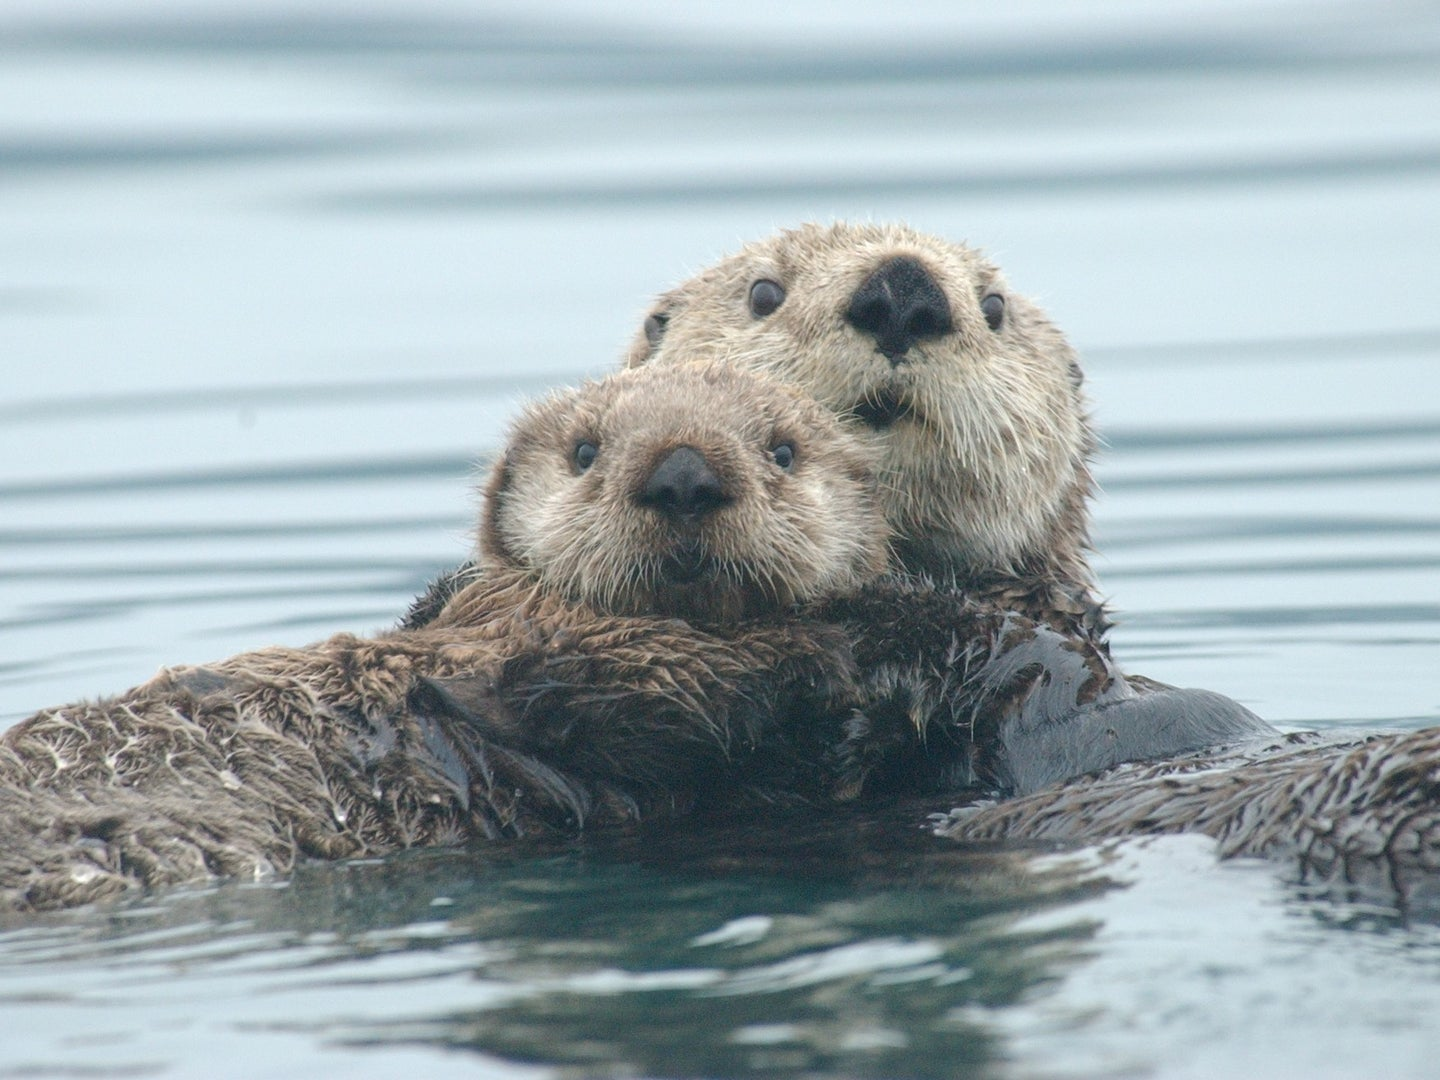 Sea otters defy our understanding of metabolism